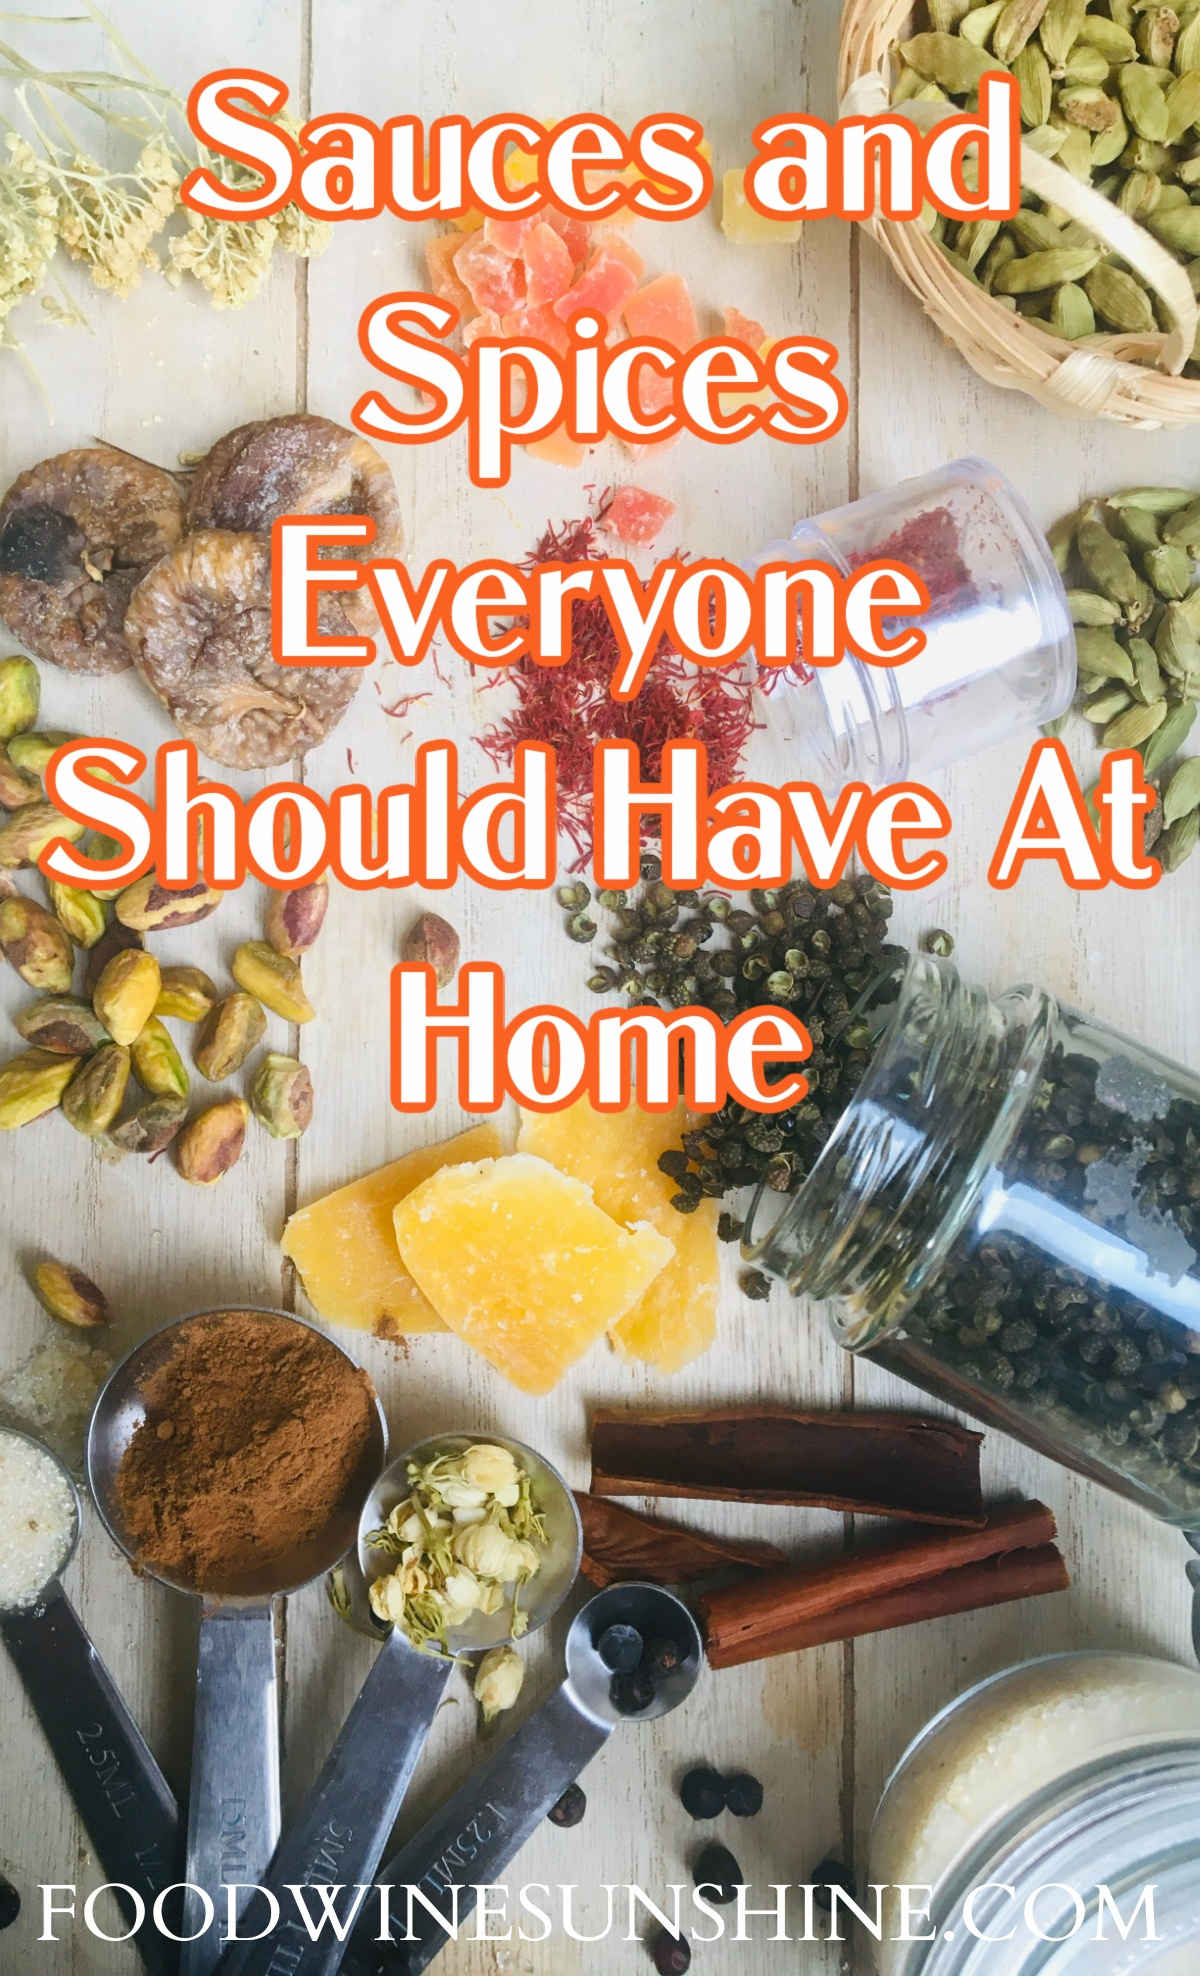 Sauces and Spices To Have at Home